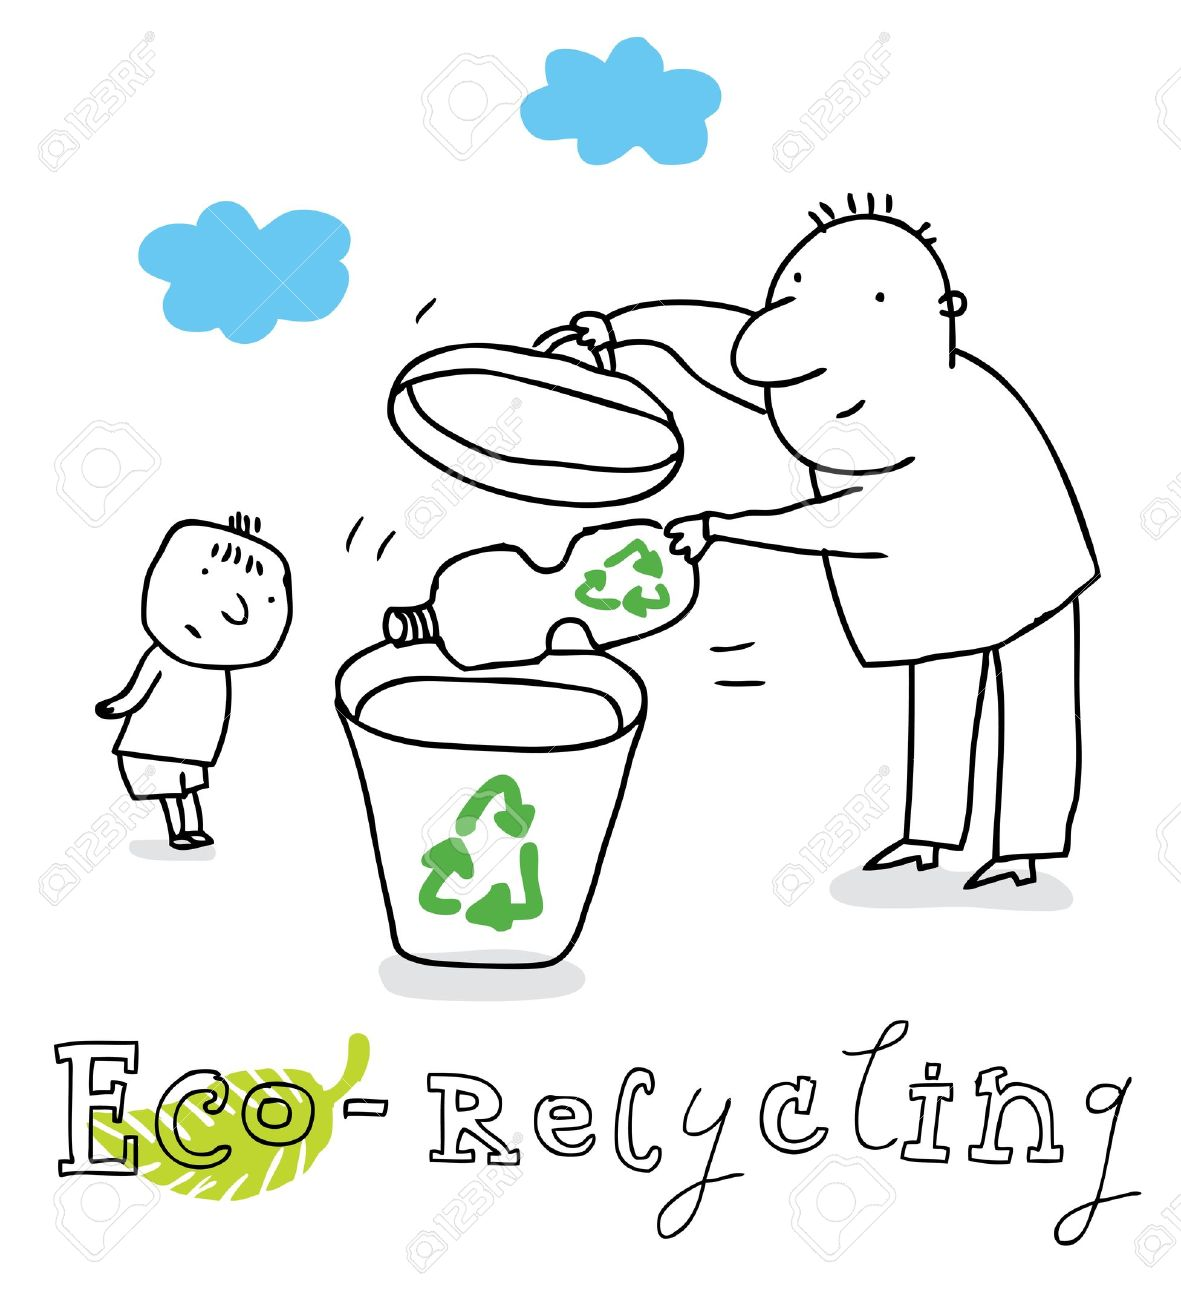 Eco recycling; ecology and environment protection, vector drawing ; isolated on background. Stock Vector - 12380786